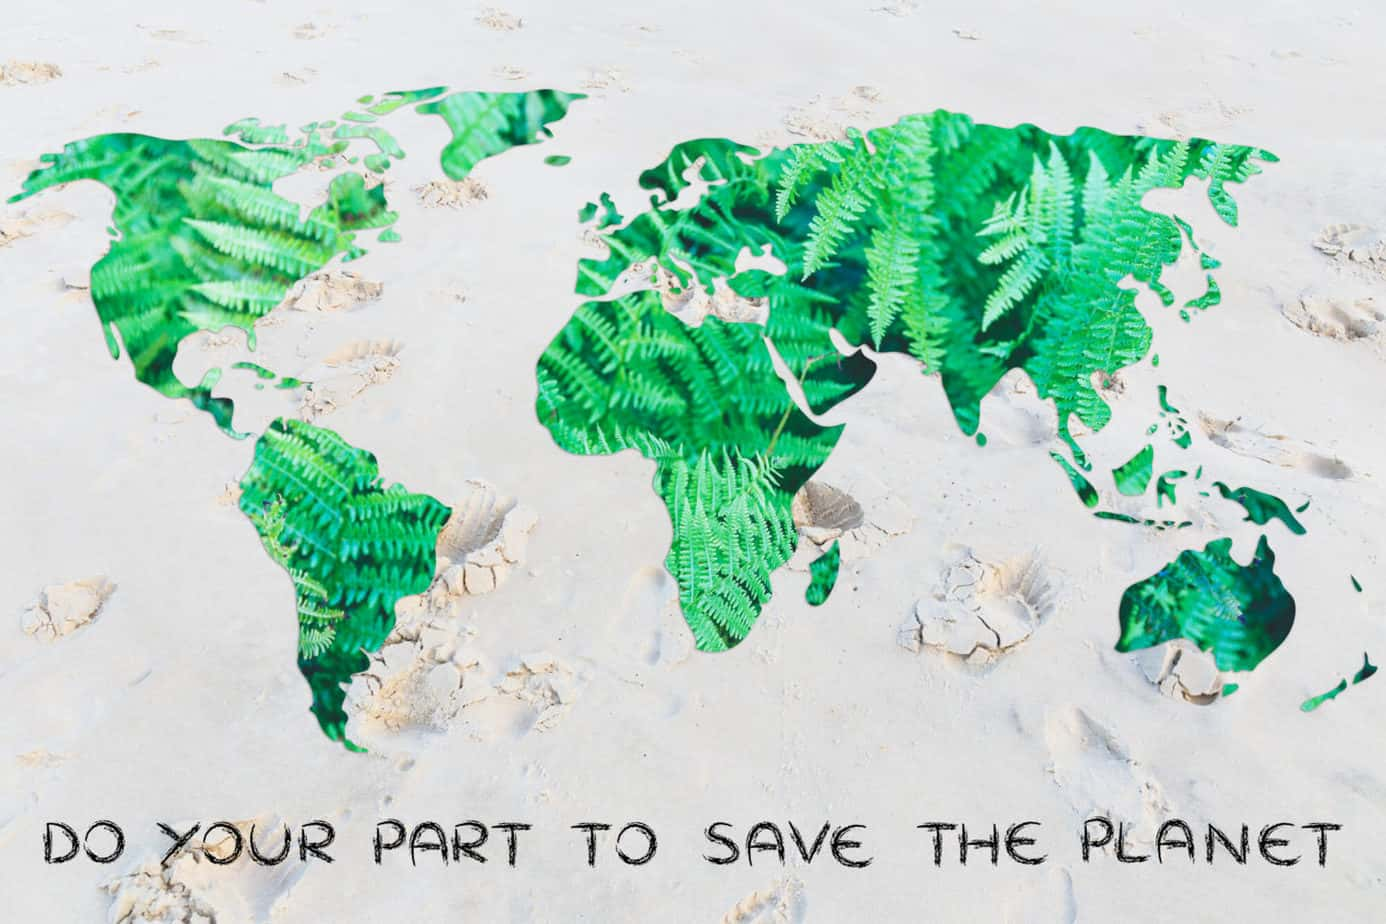 Do Your Part to Save the Planet